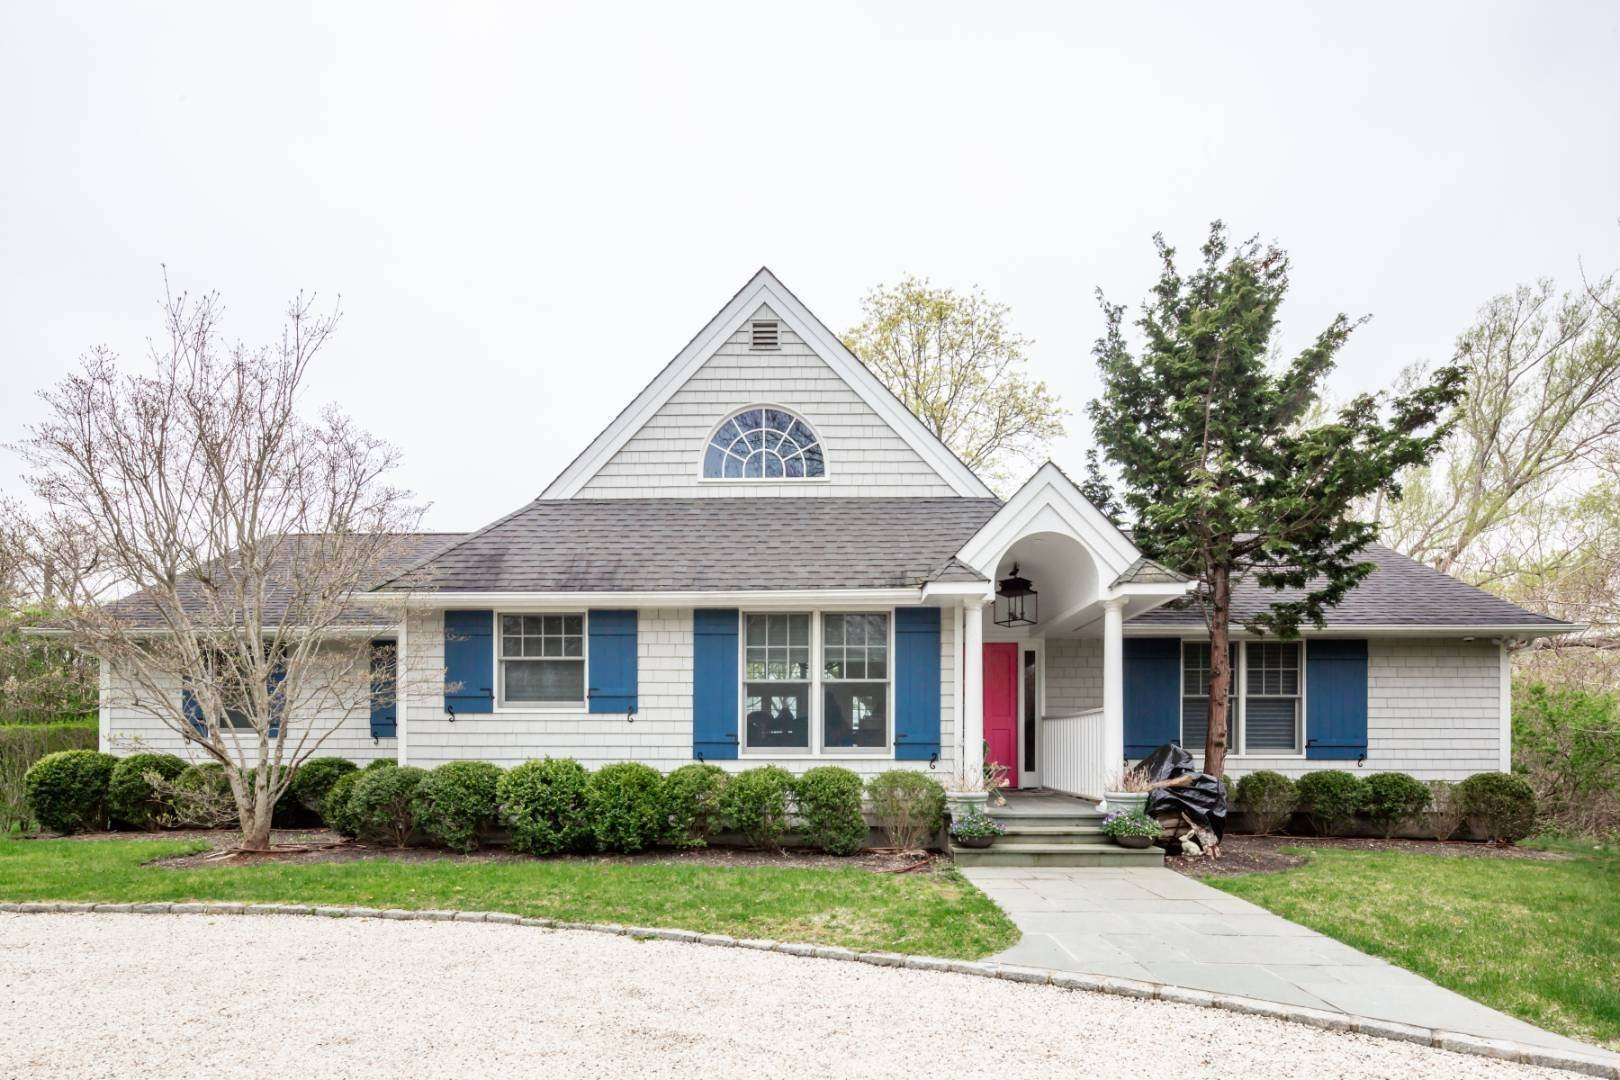 9. Single Family Home at Natural Beauty Of Heady Creek Unfolds In This 3 Bedroom Home Southampton, NY 11968